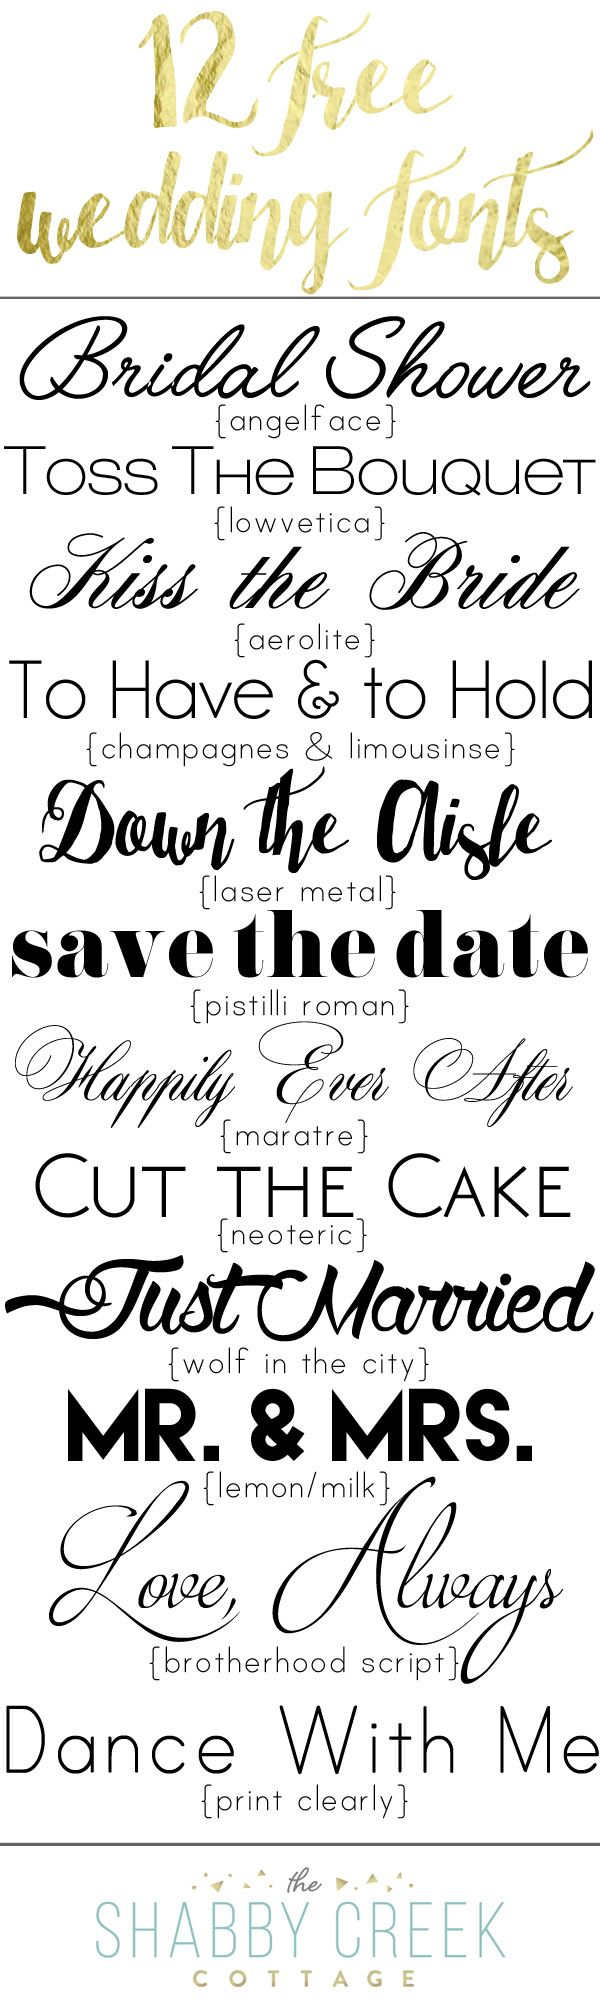 17 Best images about WEDDING FONTS on Pinterest | Wedding, Baboon ...